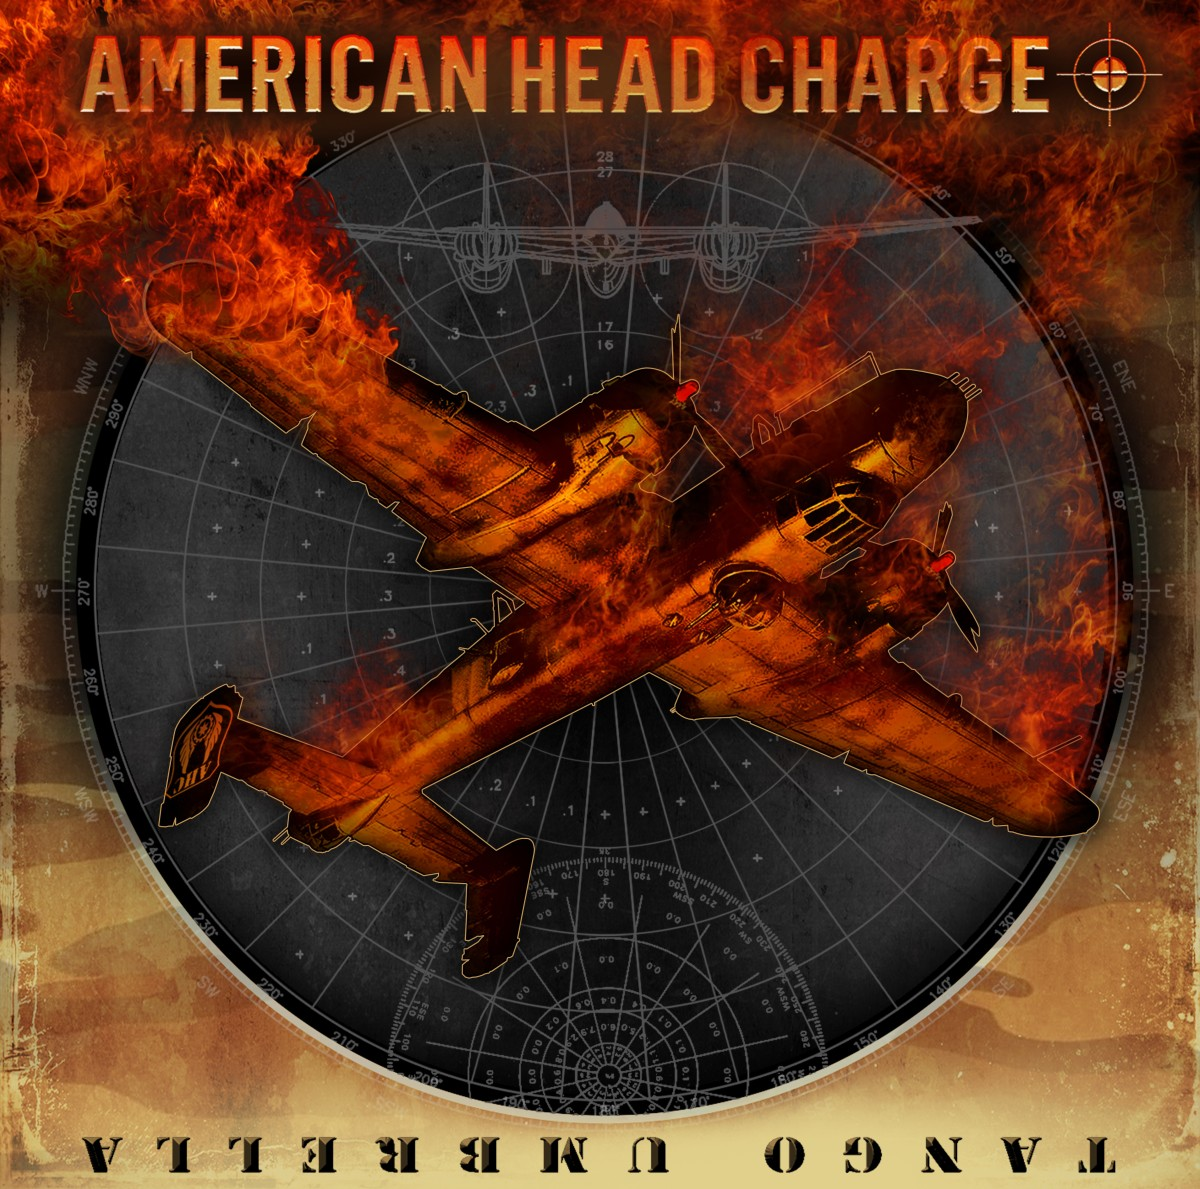 Interview With Ted Hallows of American Head Charge